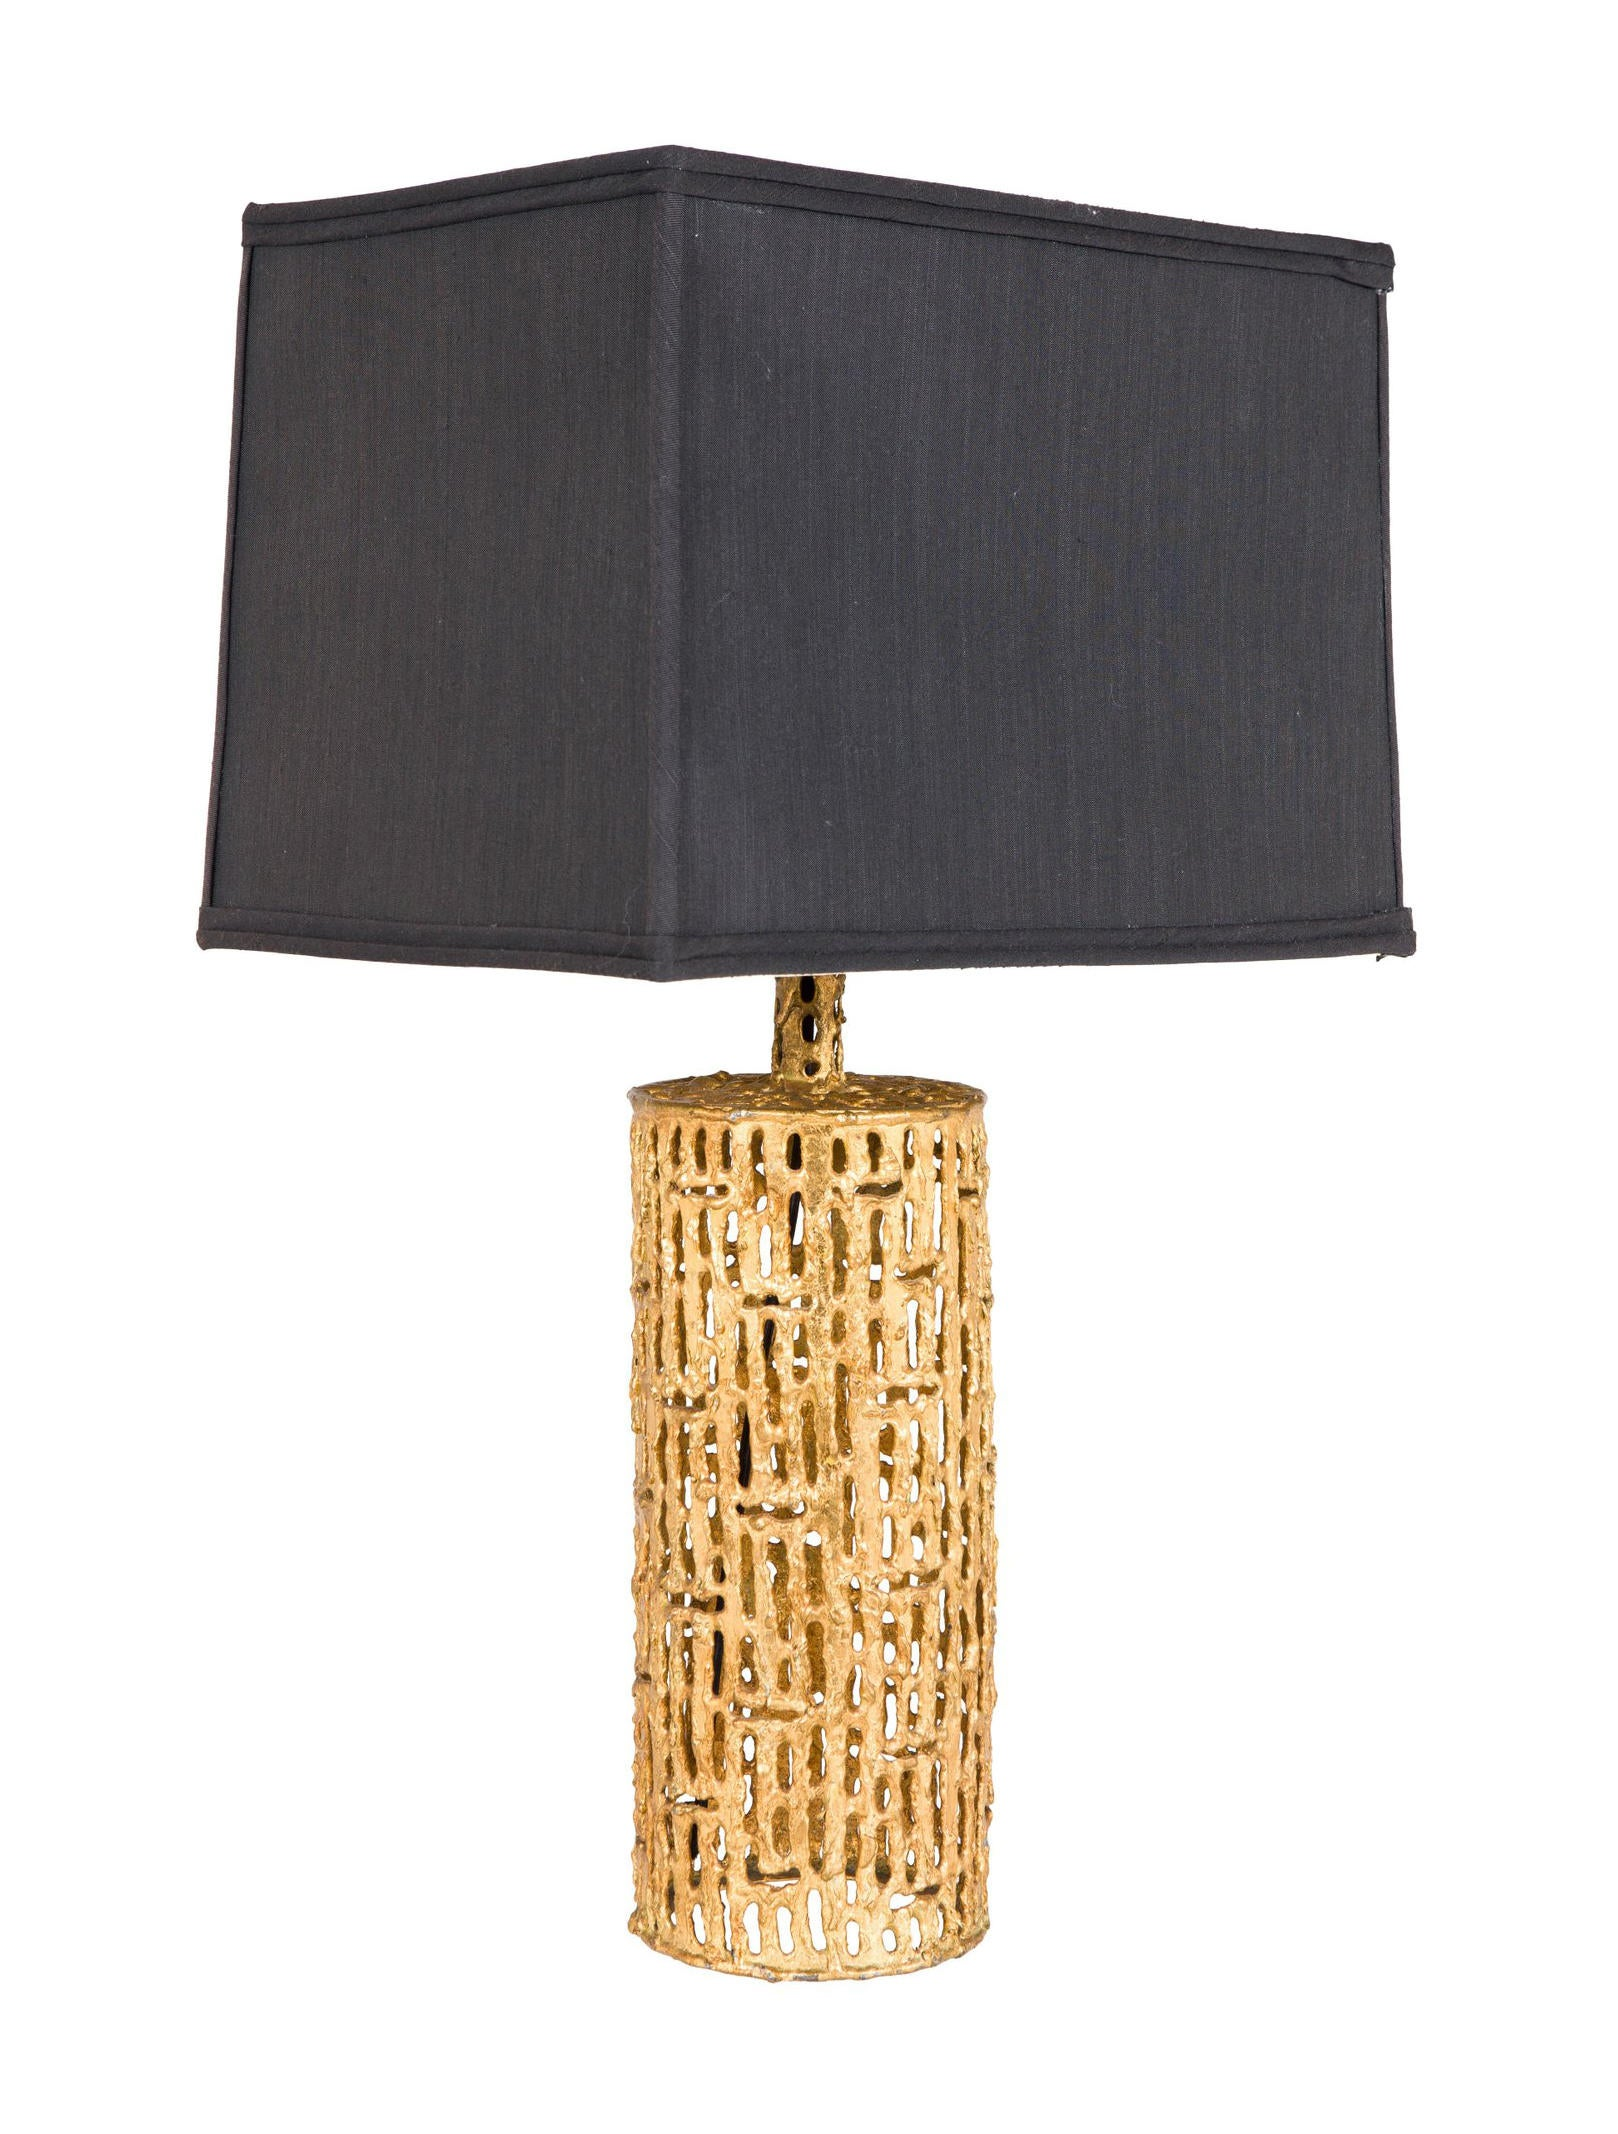 Gilt gold table lamp lighting lamps20188 the realreal gilt gold table geotapseo Gallery